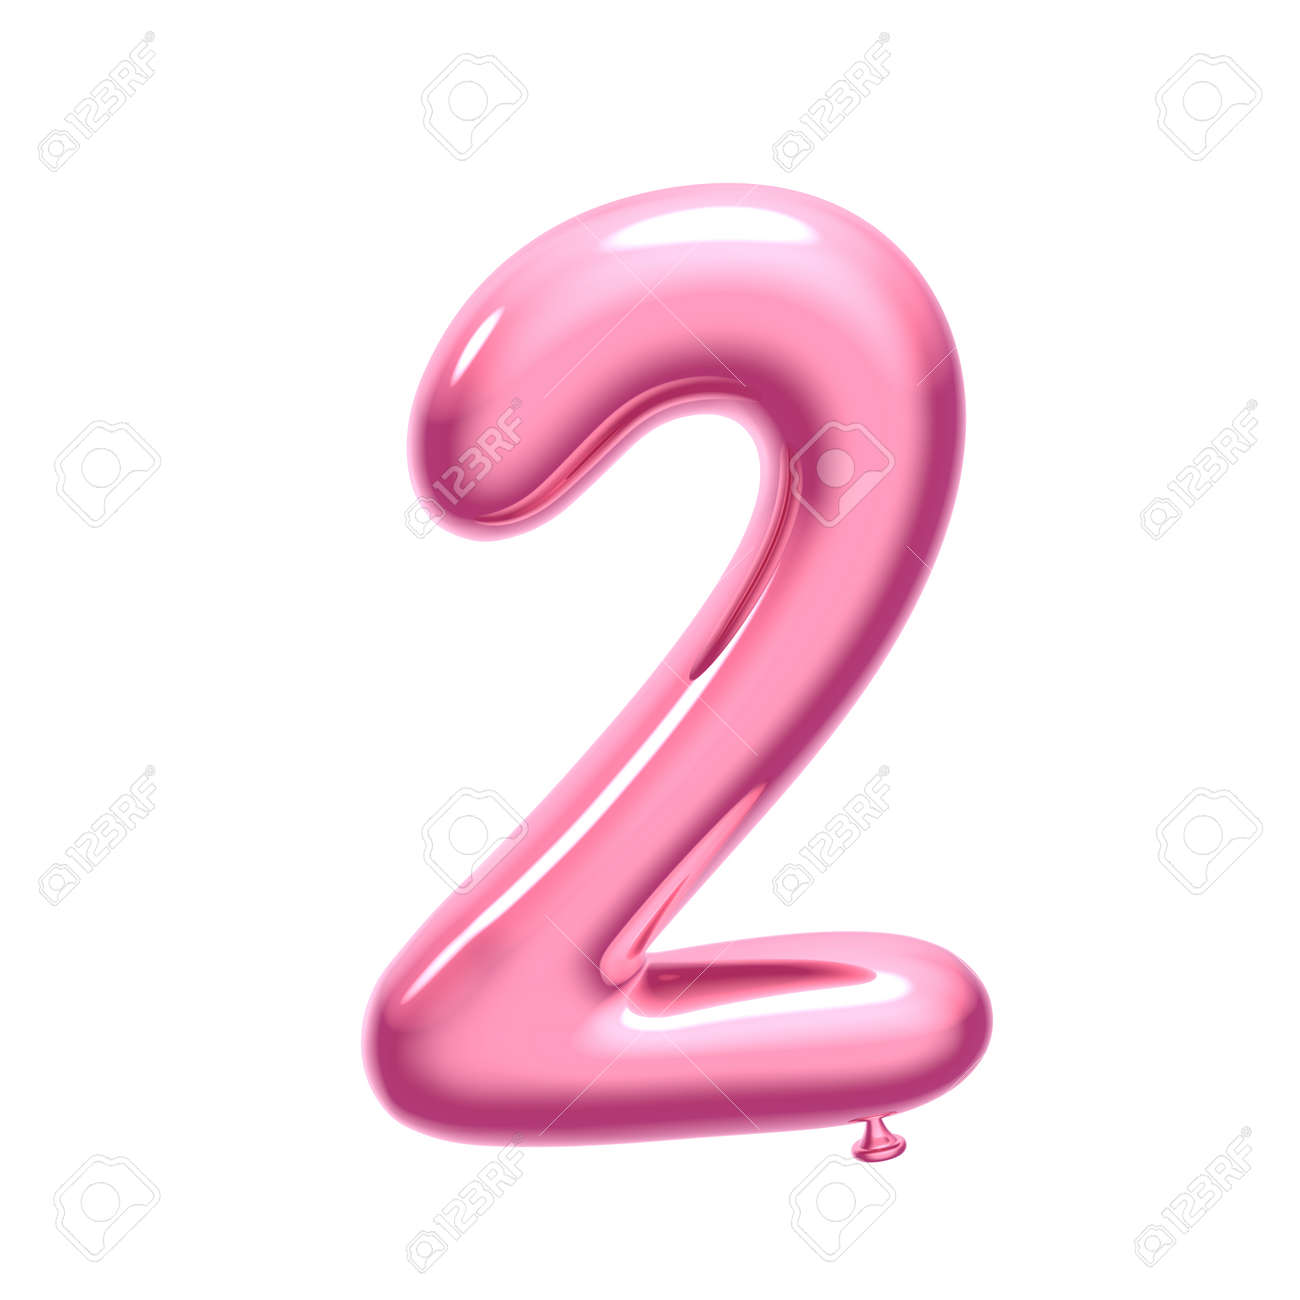 3D render pink balloon number 2 on white background - 121621073